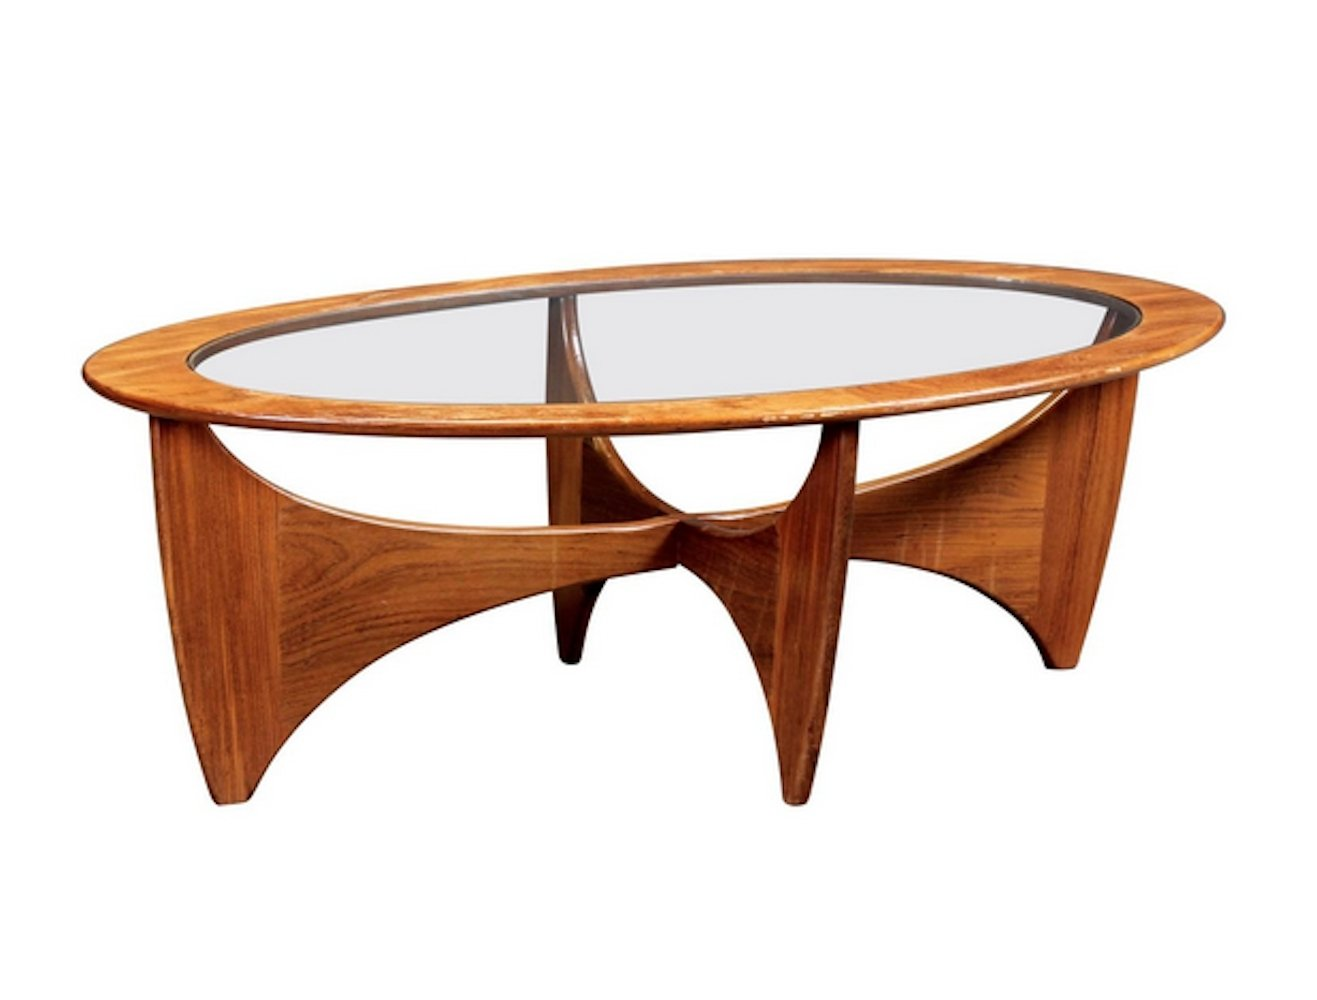 Oval Teak Coffee Table With Glass Top By G Plan